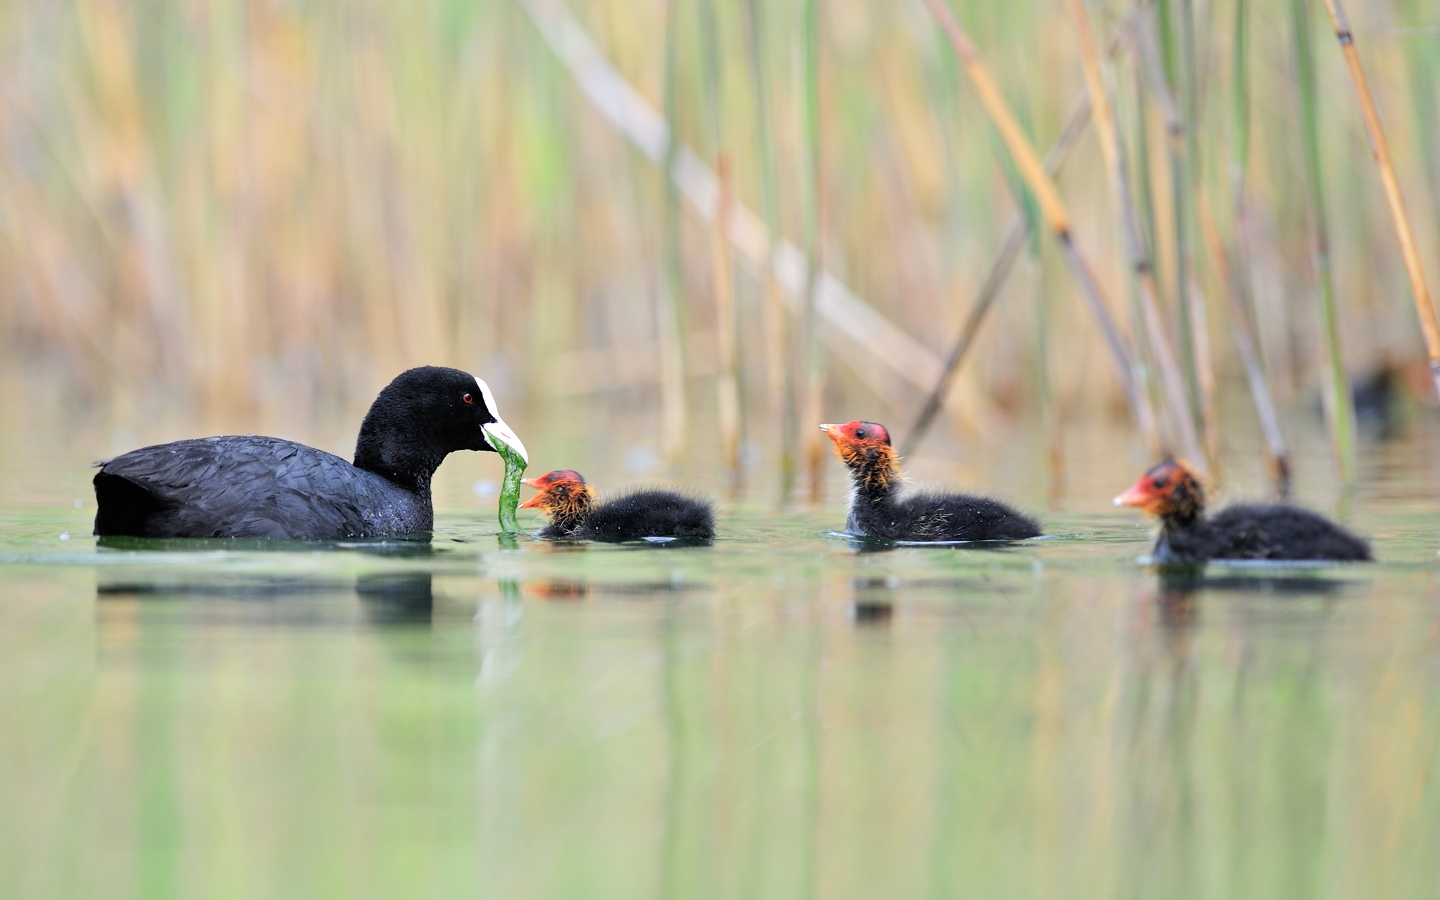 eurasian coot jean daniel borgeaud wildlife photographer. Black Bedroom Furniture Sets. Home Design Ideas